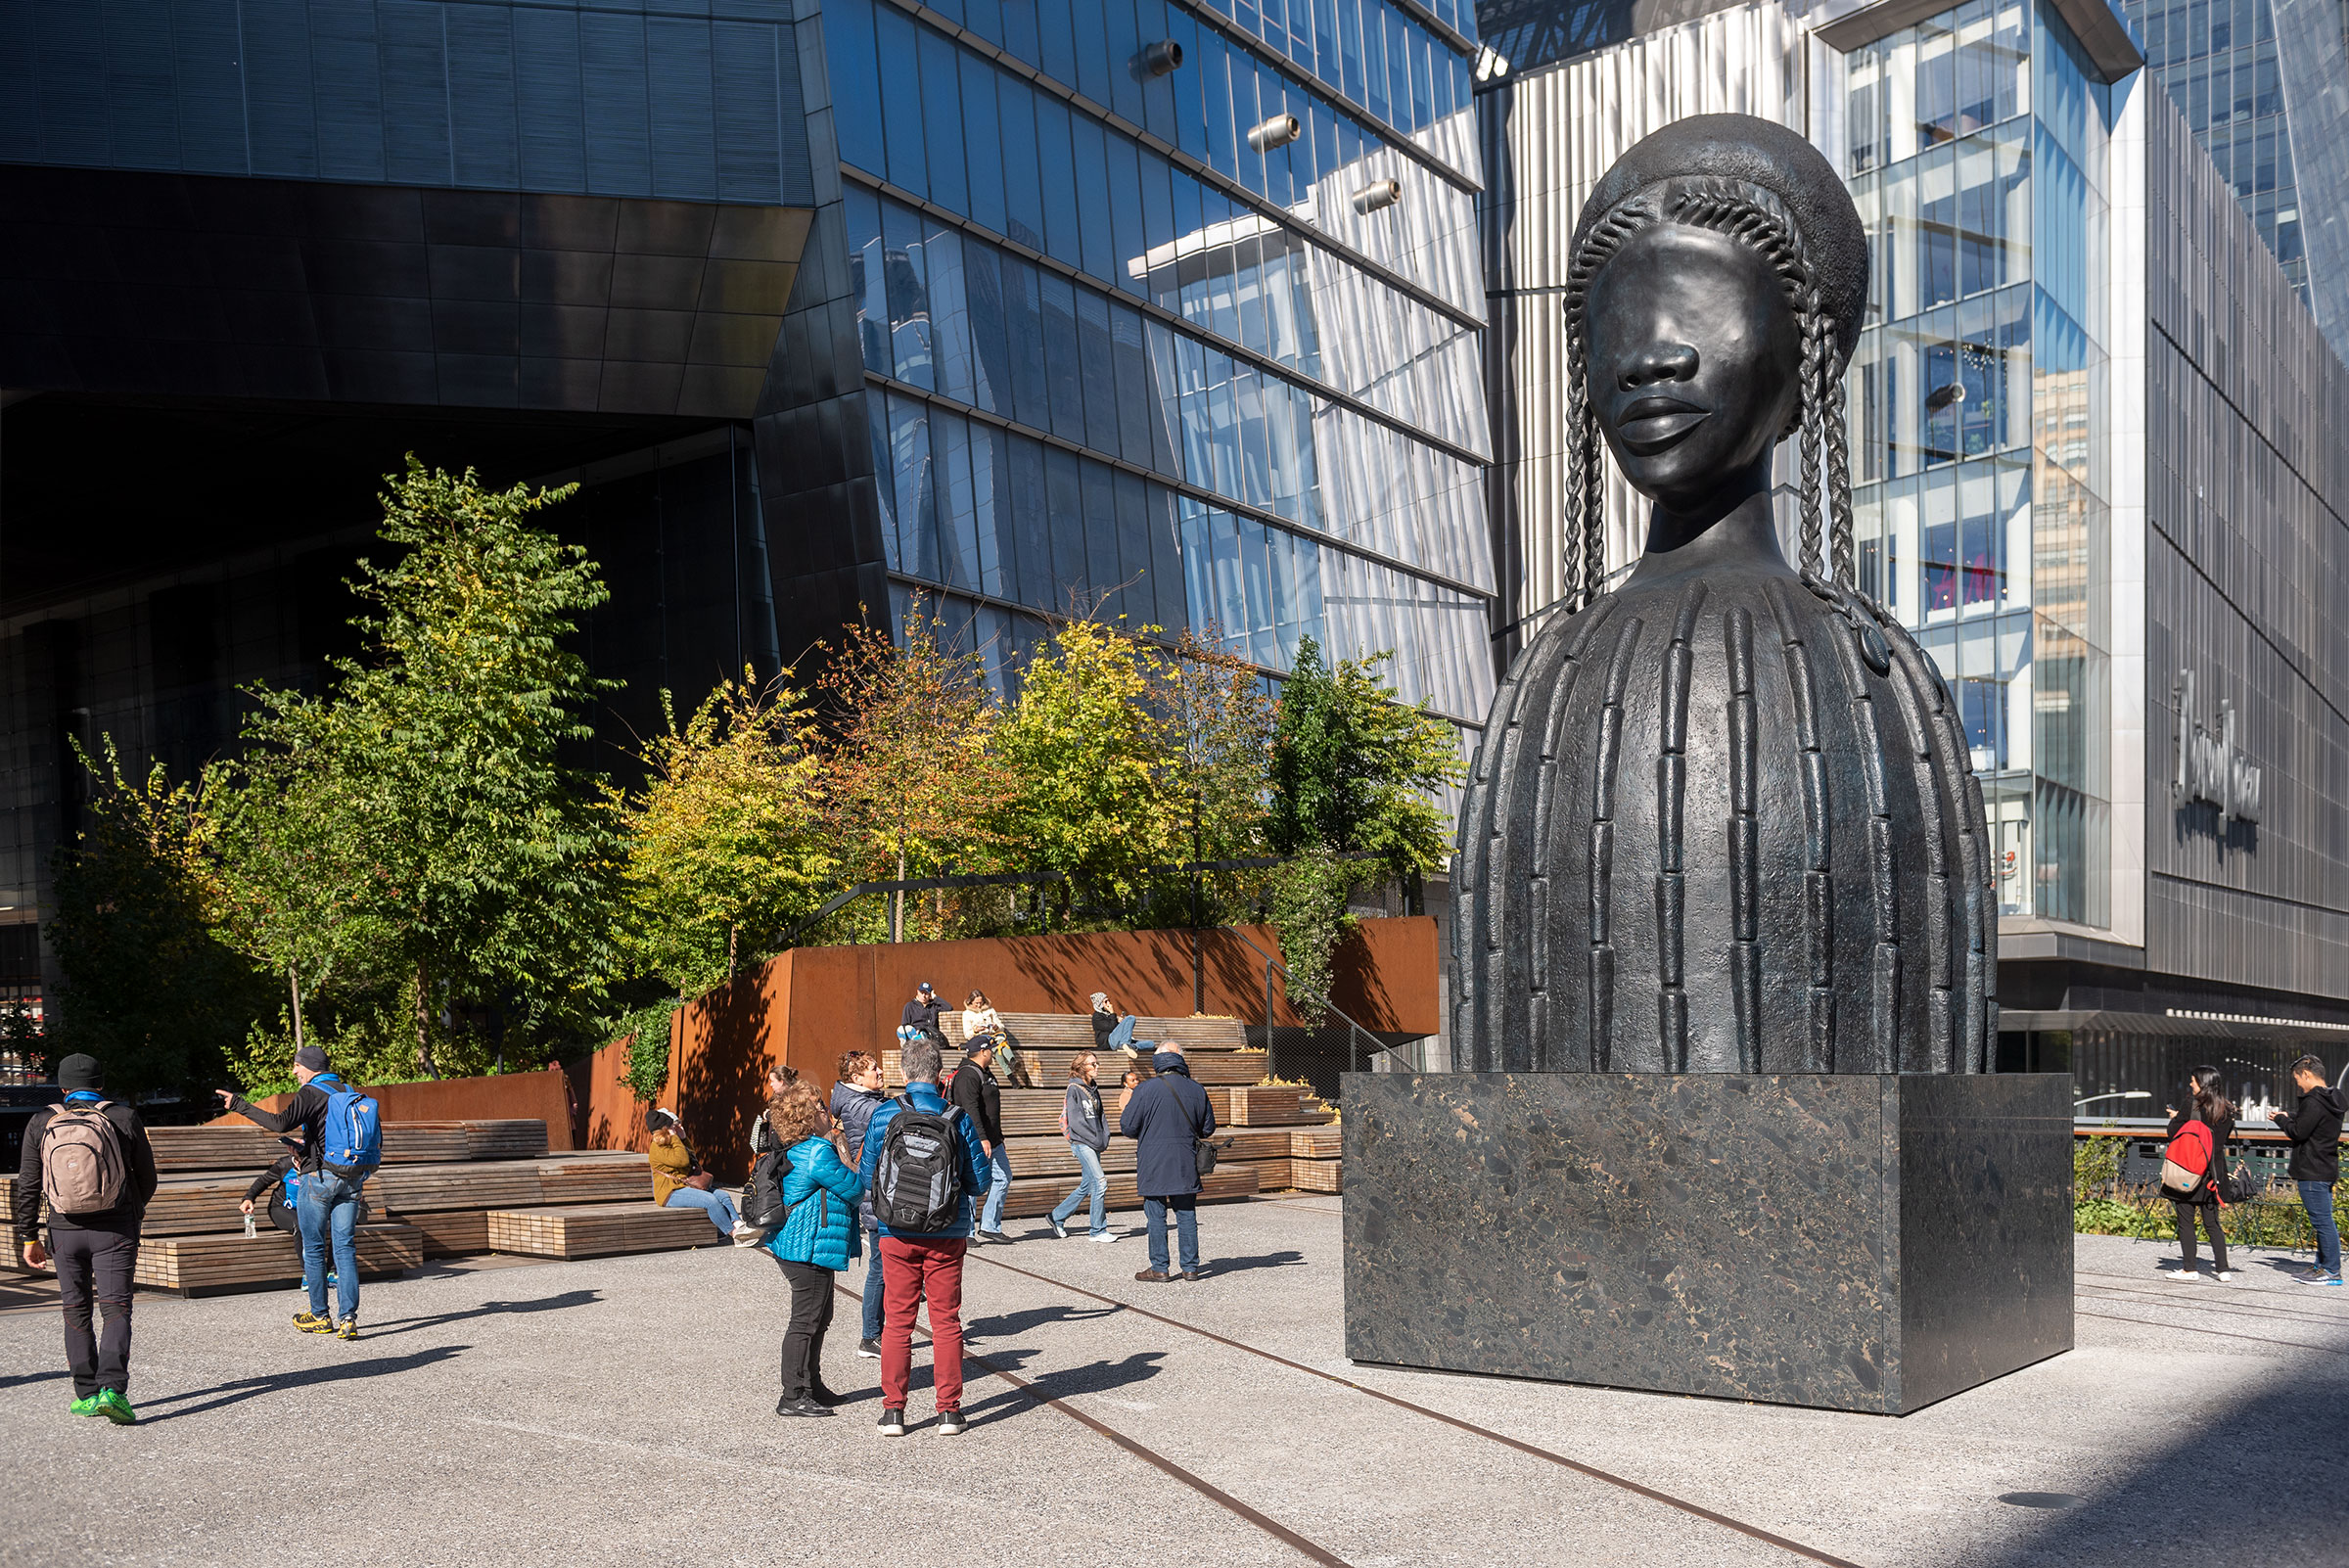 A large bronze bust of a Black woman